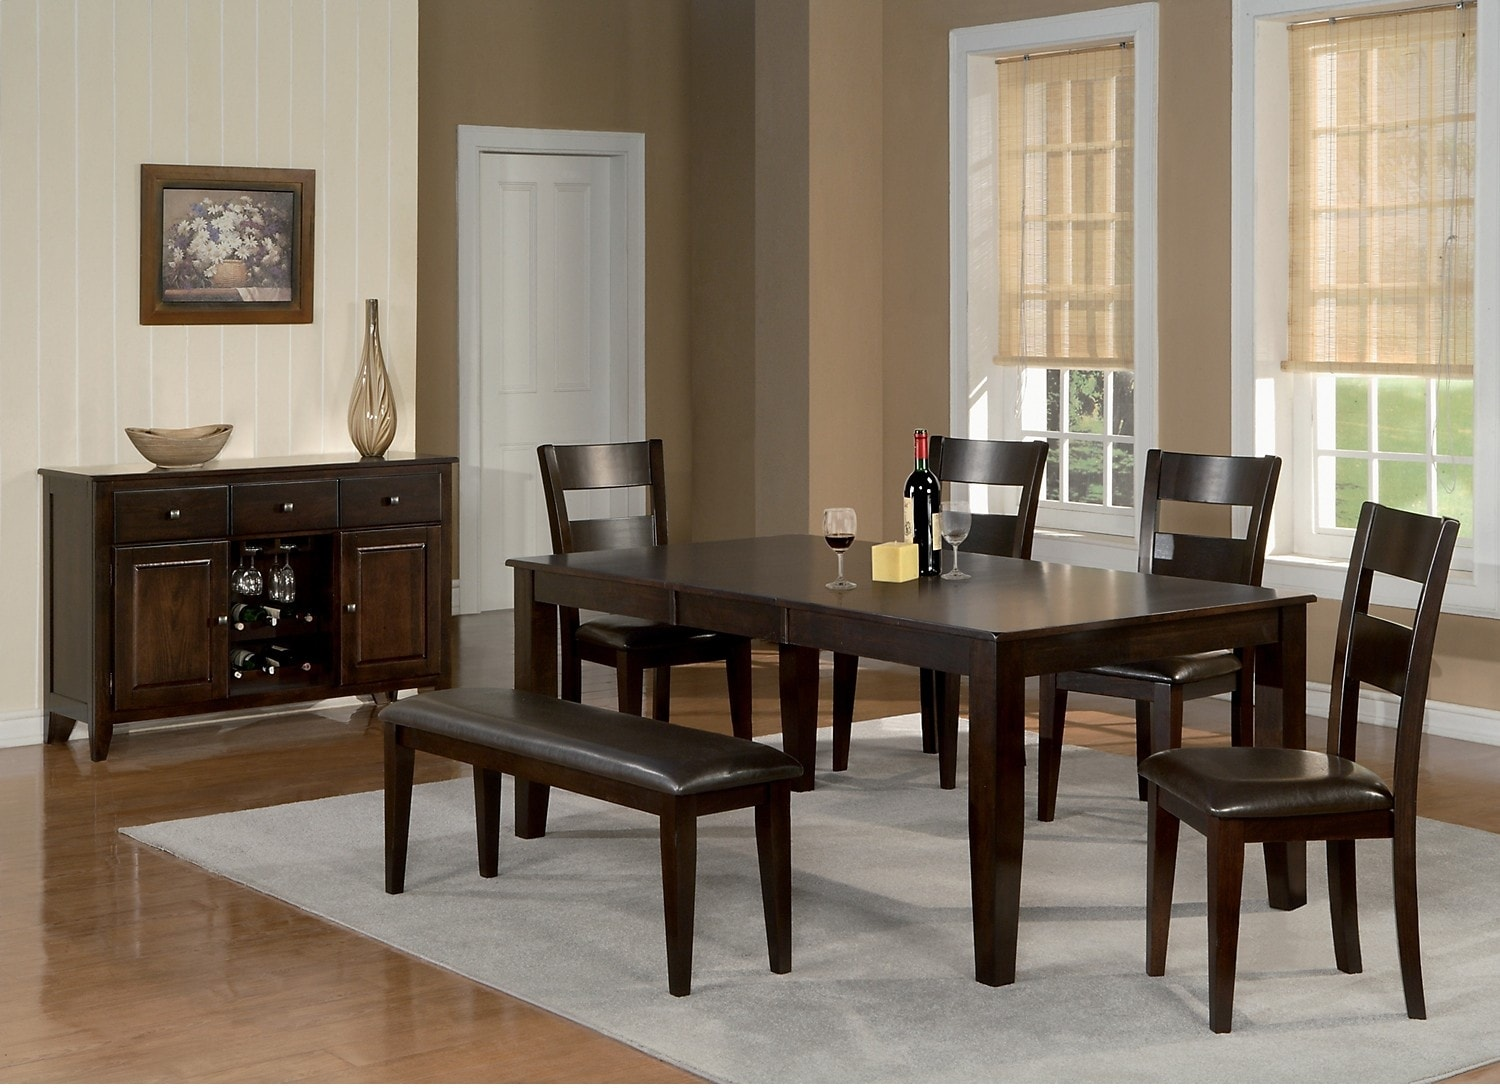 Dining Room Furniture - Dakota 7 Piece Casual Dining Package